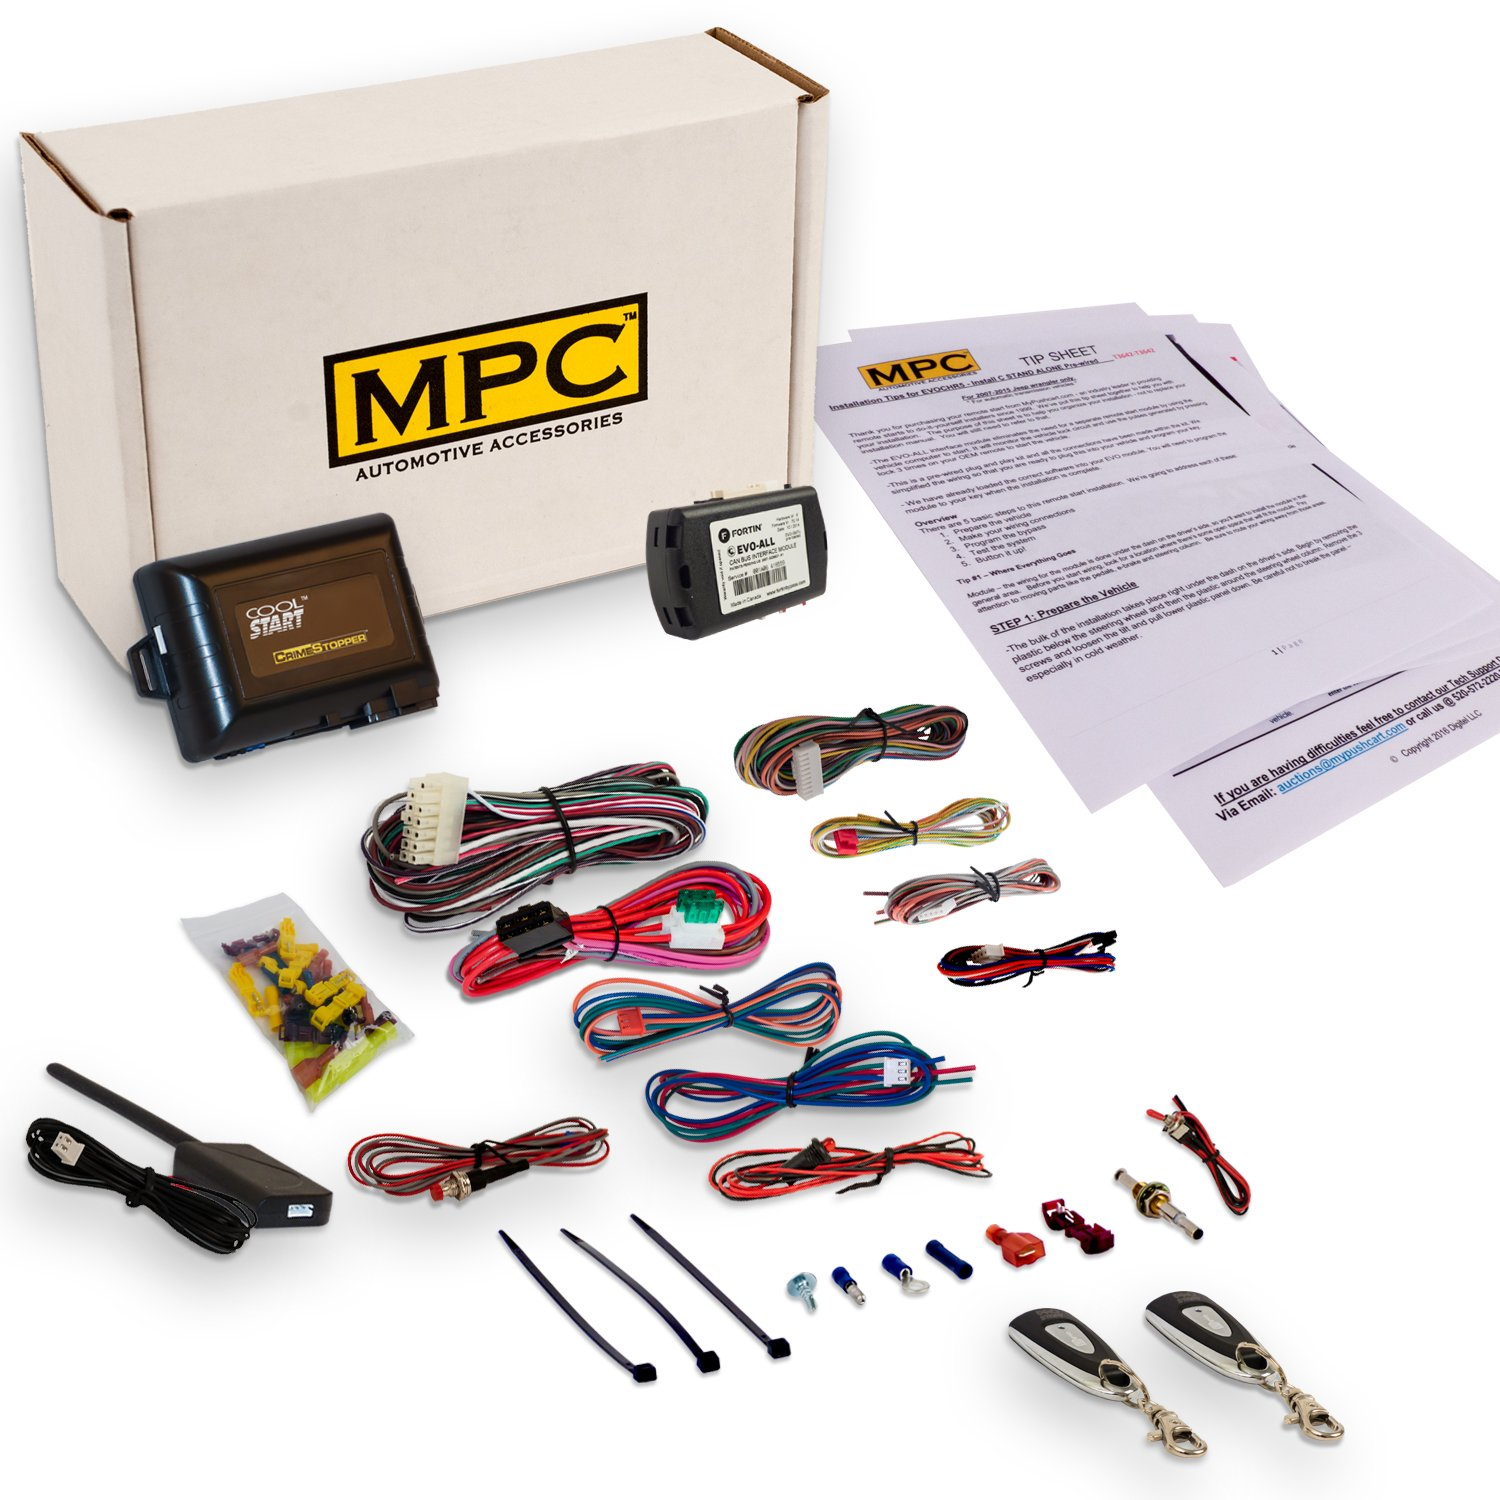 EZ Install 1-Button Remote Start Kit for Honda/Acura. Includes Bypass! by MPC